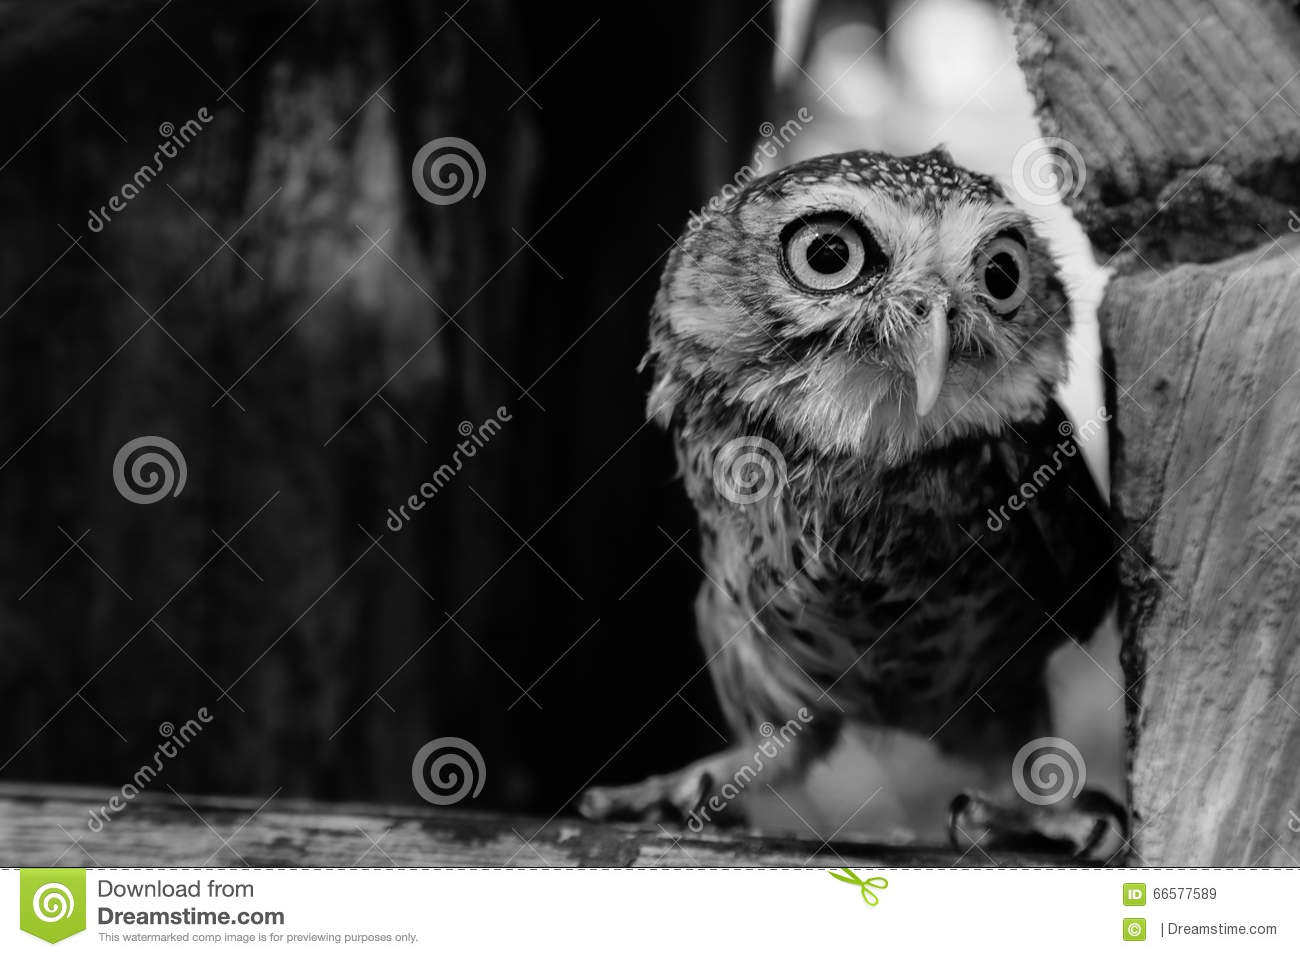 One wing left owl